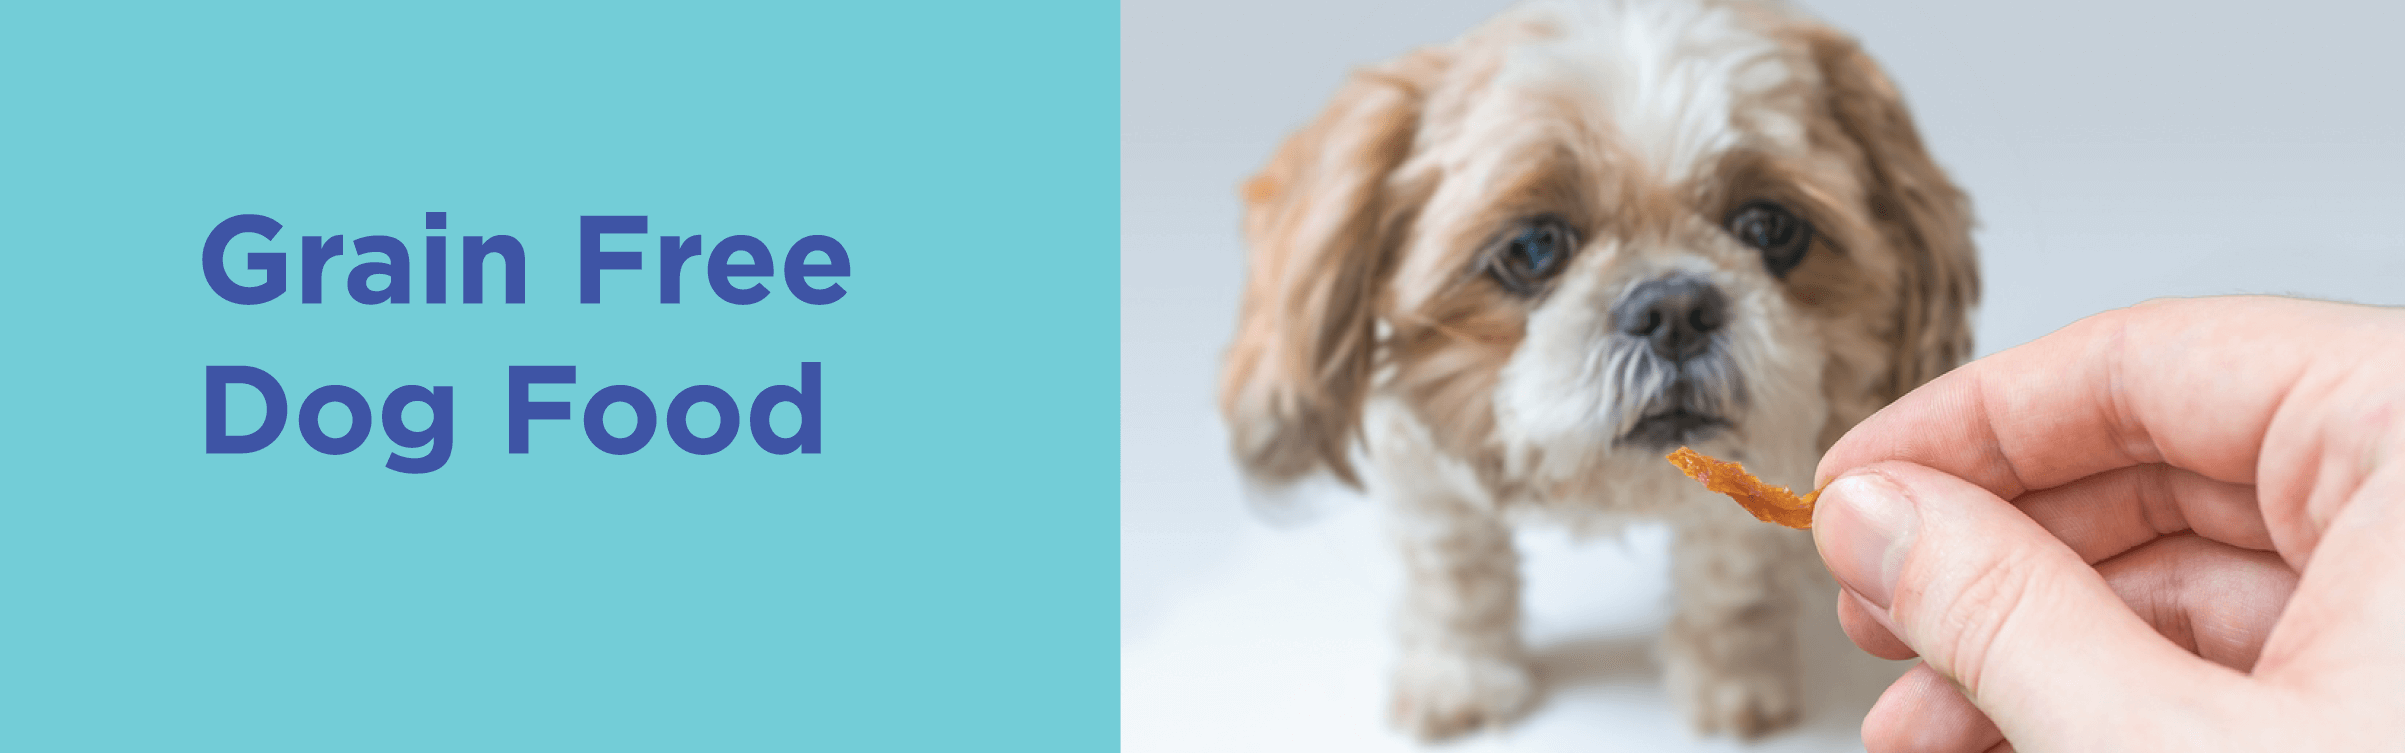 Grain Free Dog Food Better For Dogs